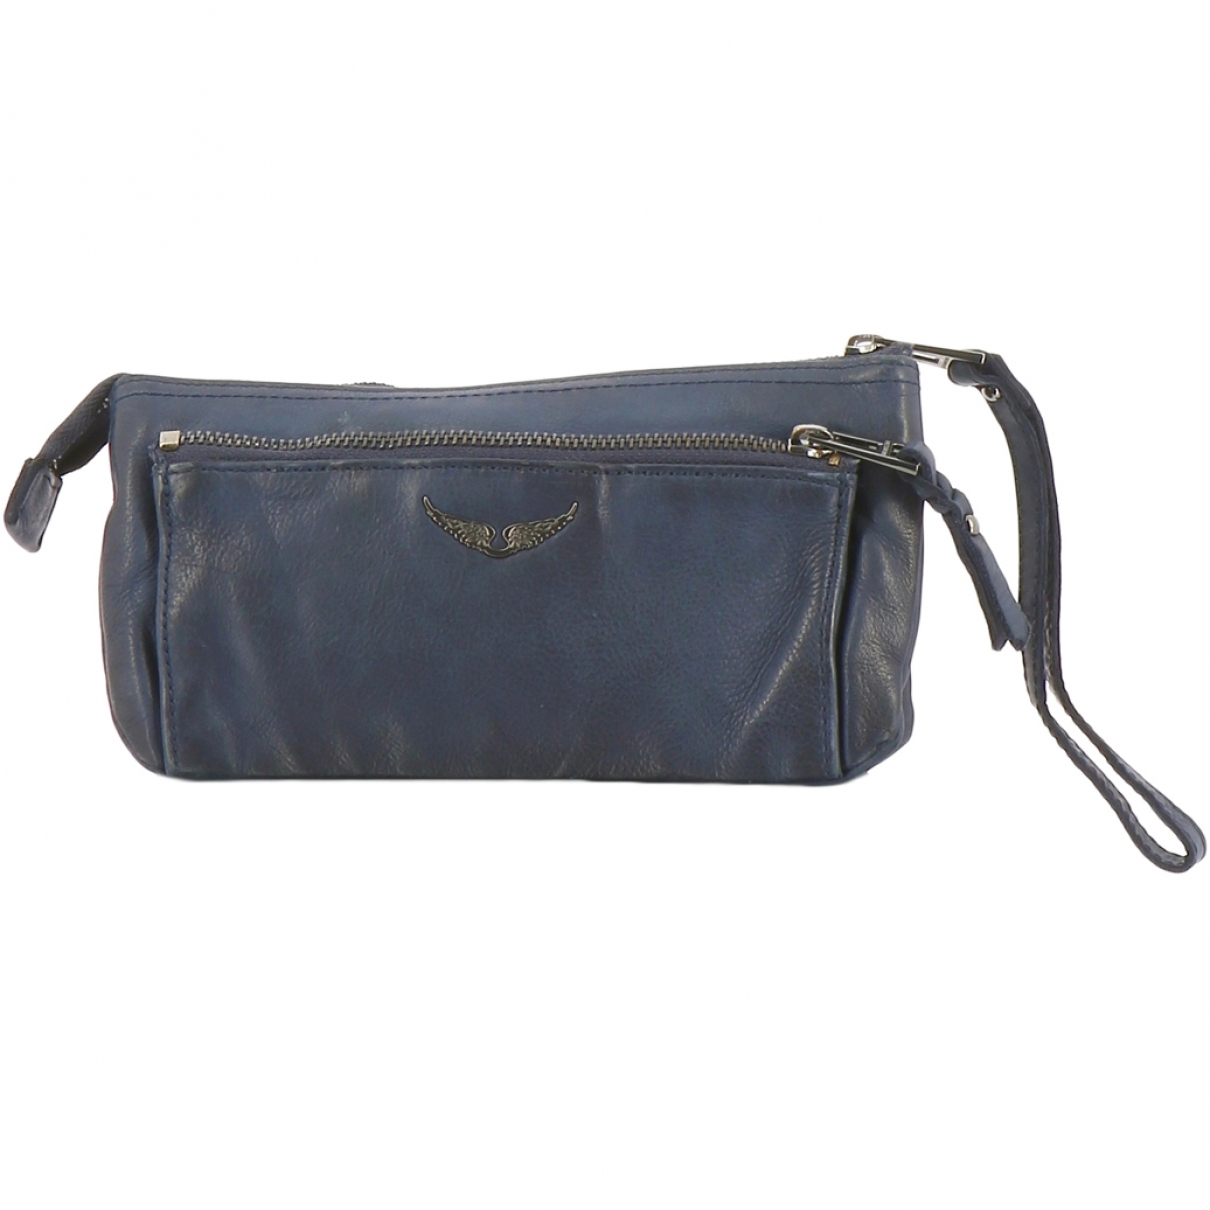 Zadig & Voltaire \N Blue Leather Clutch bag for Women \N